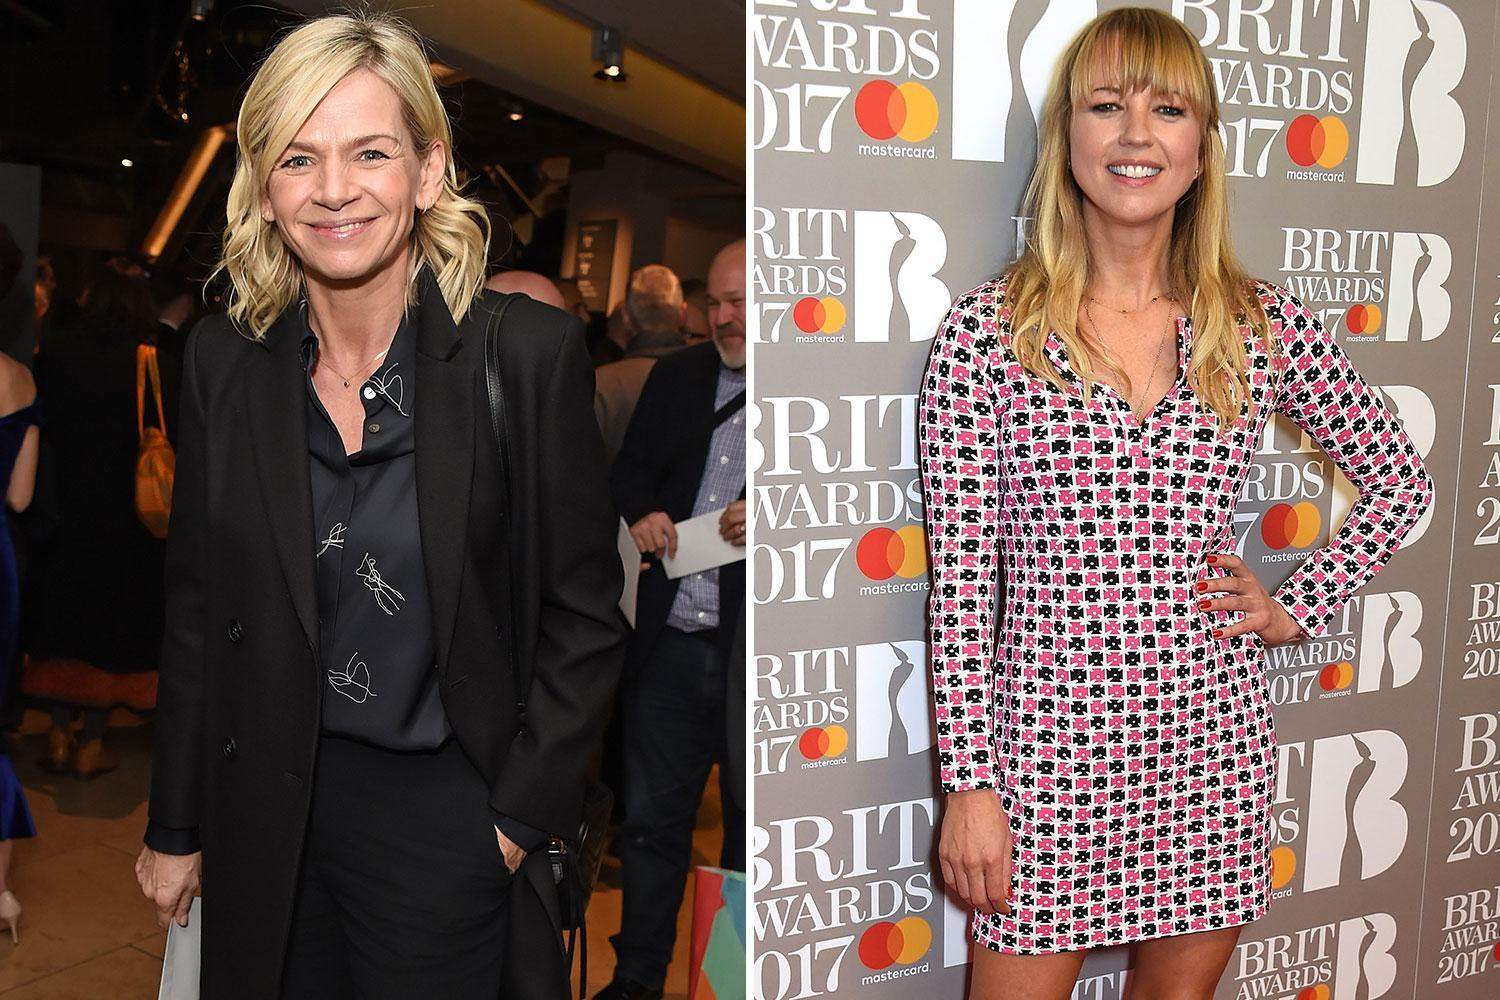 Zoe Ball claims Radio 2 Breakfast gig is first time she's beaten pal Sara Cox to a job